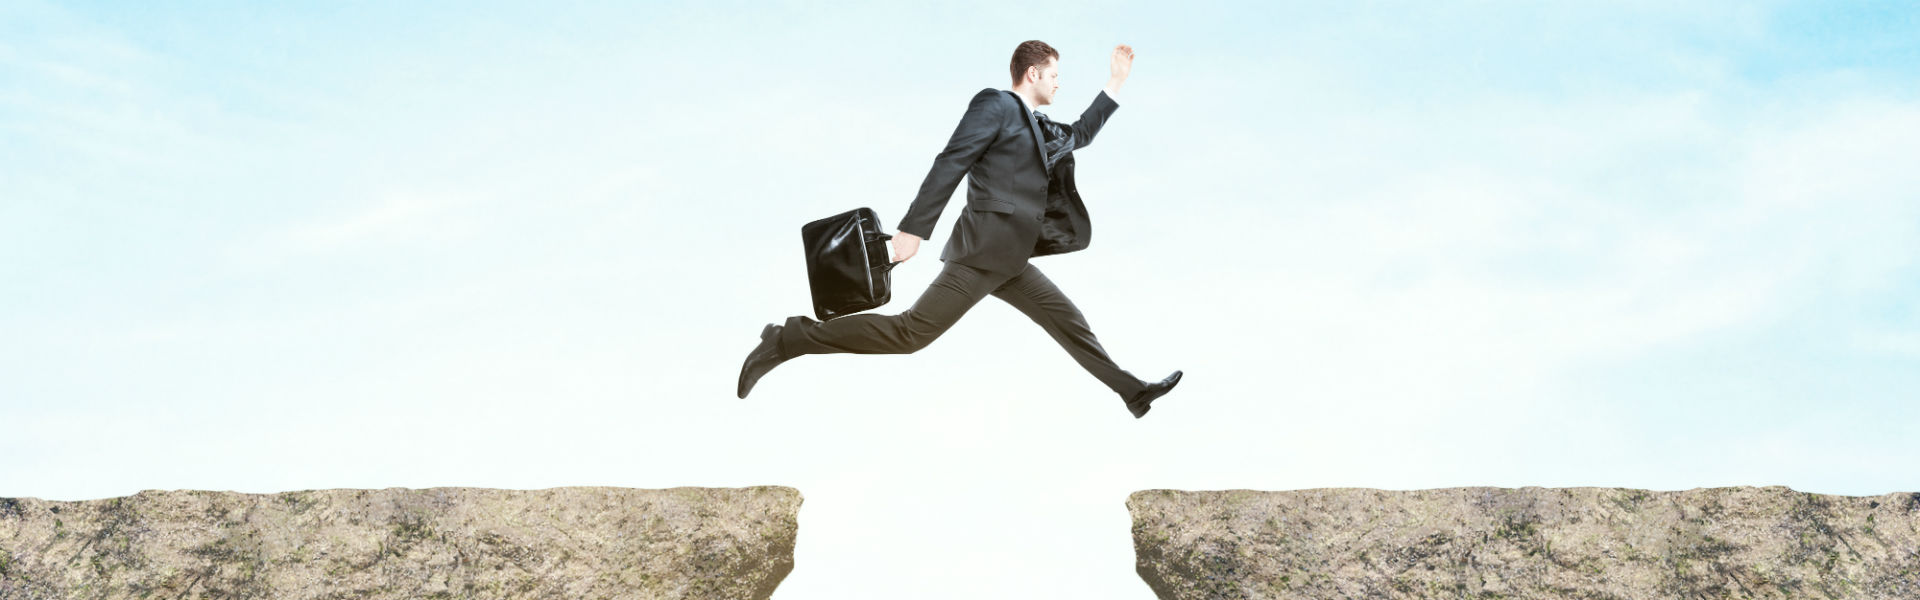 businessman jumping between cliffs